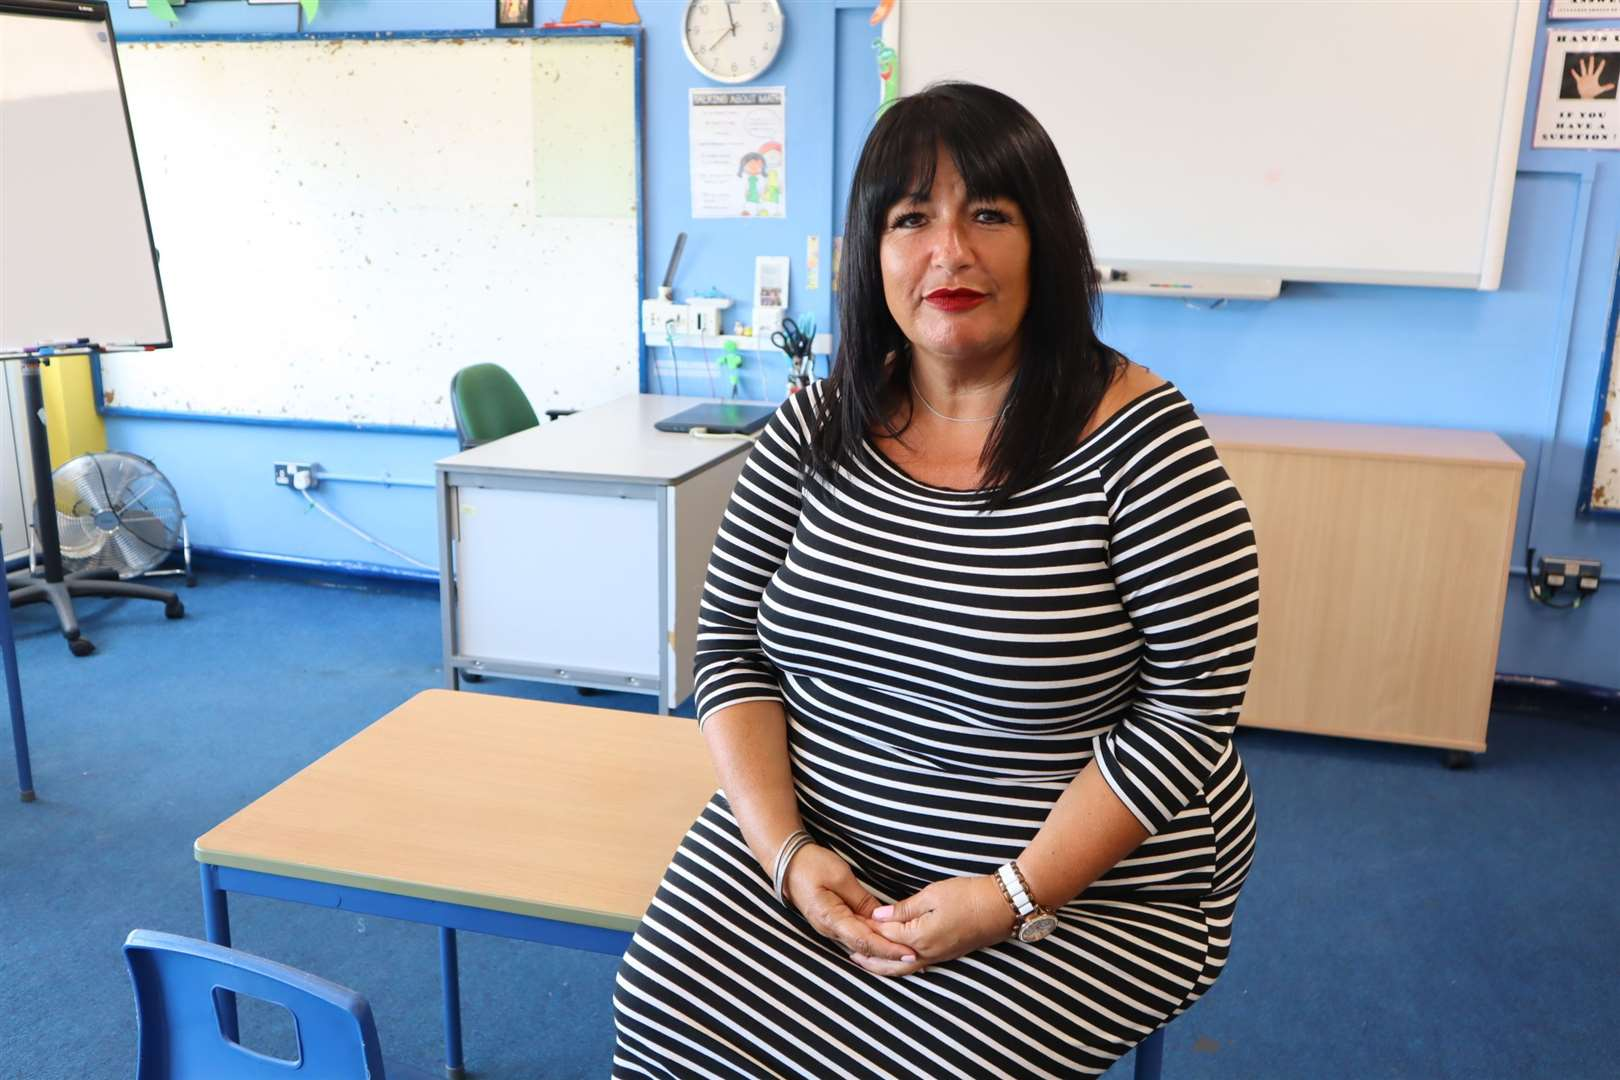 Debbie Wheeler, chief executive officer of the Island Learning Trust which runs Minster Primary School